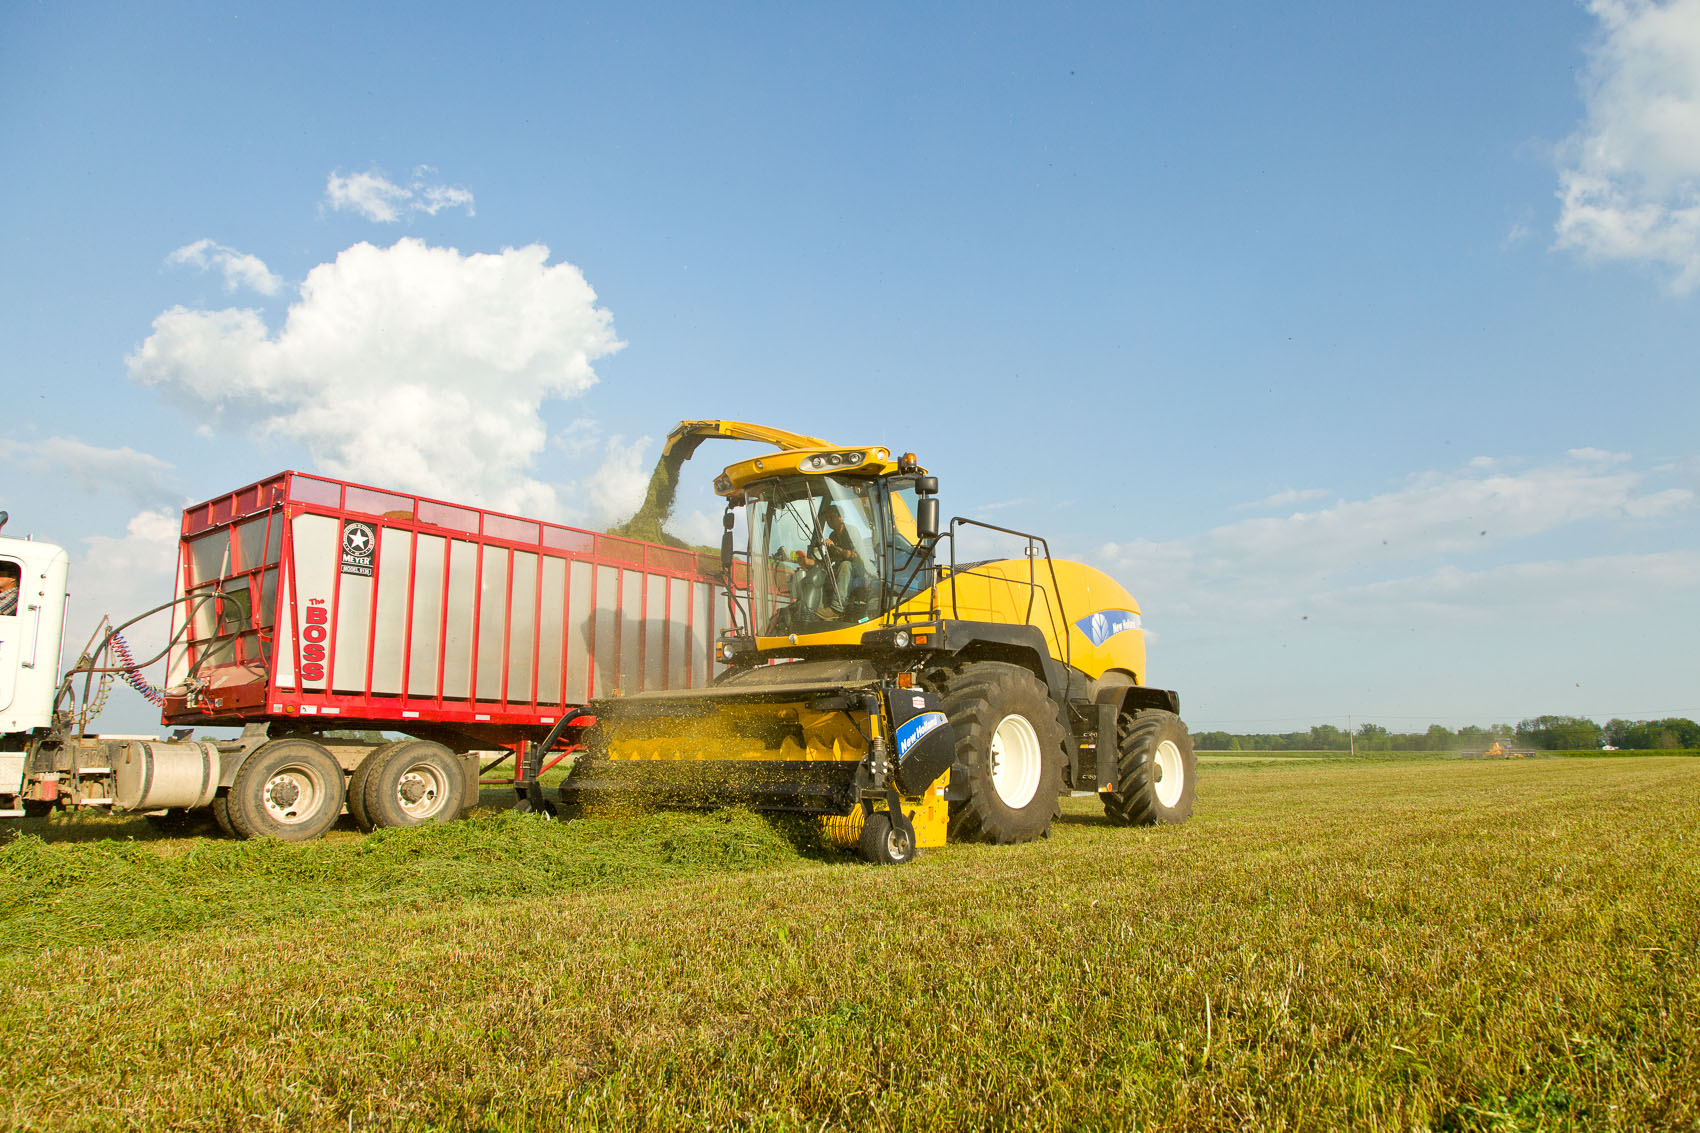 New Holland FR9080 Forage Harvestor | J. Eldon Zimmerman Photography | Lancaster, PA Agriculture Photographer